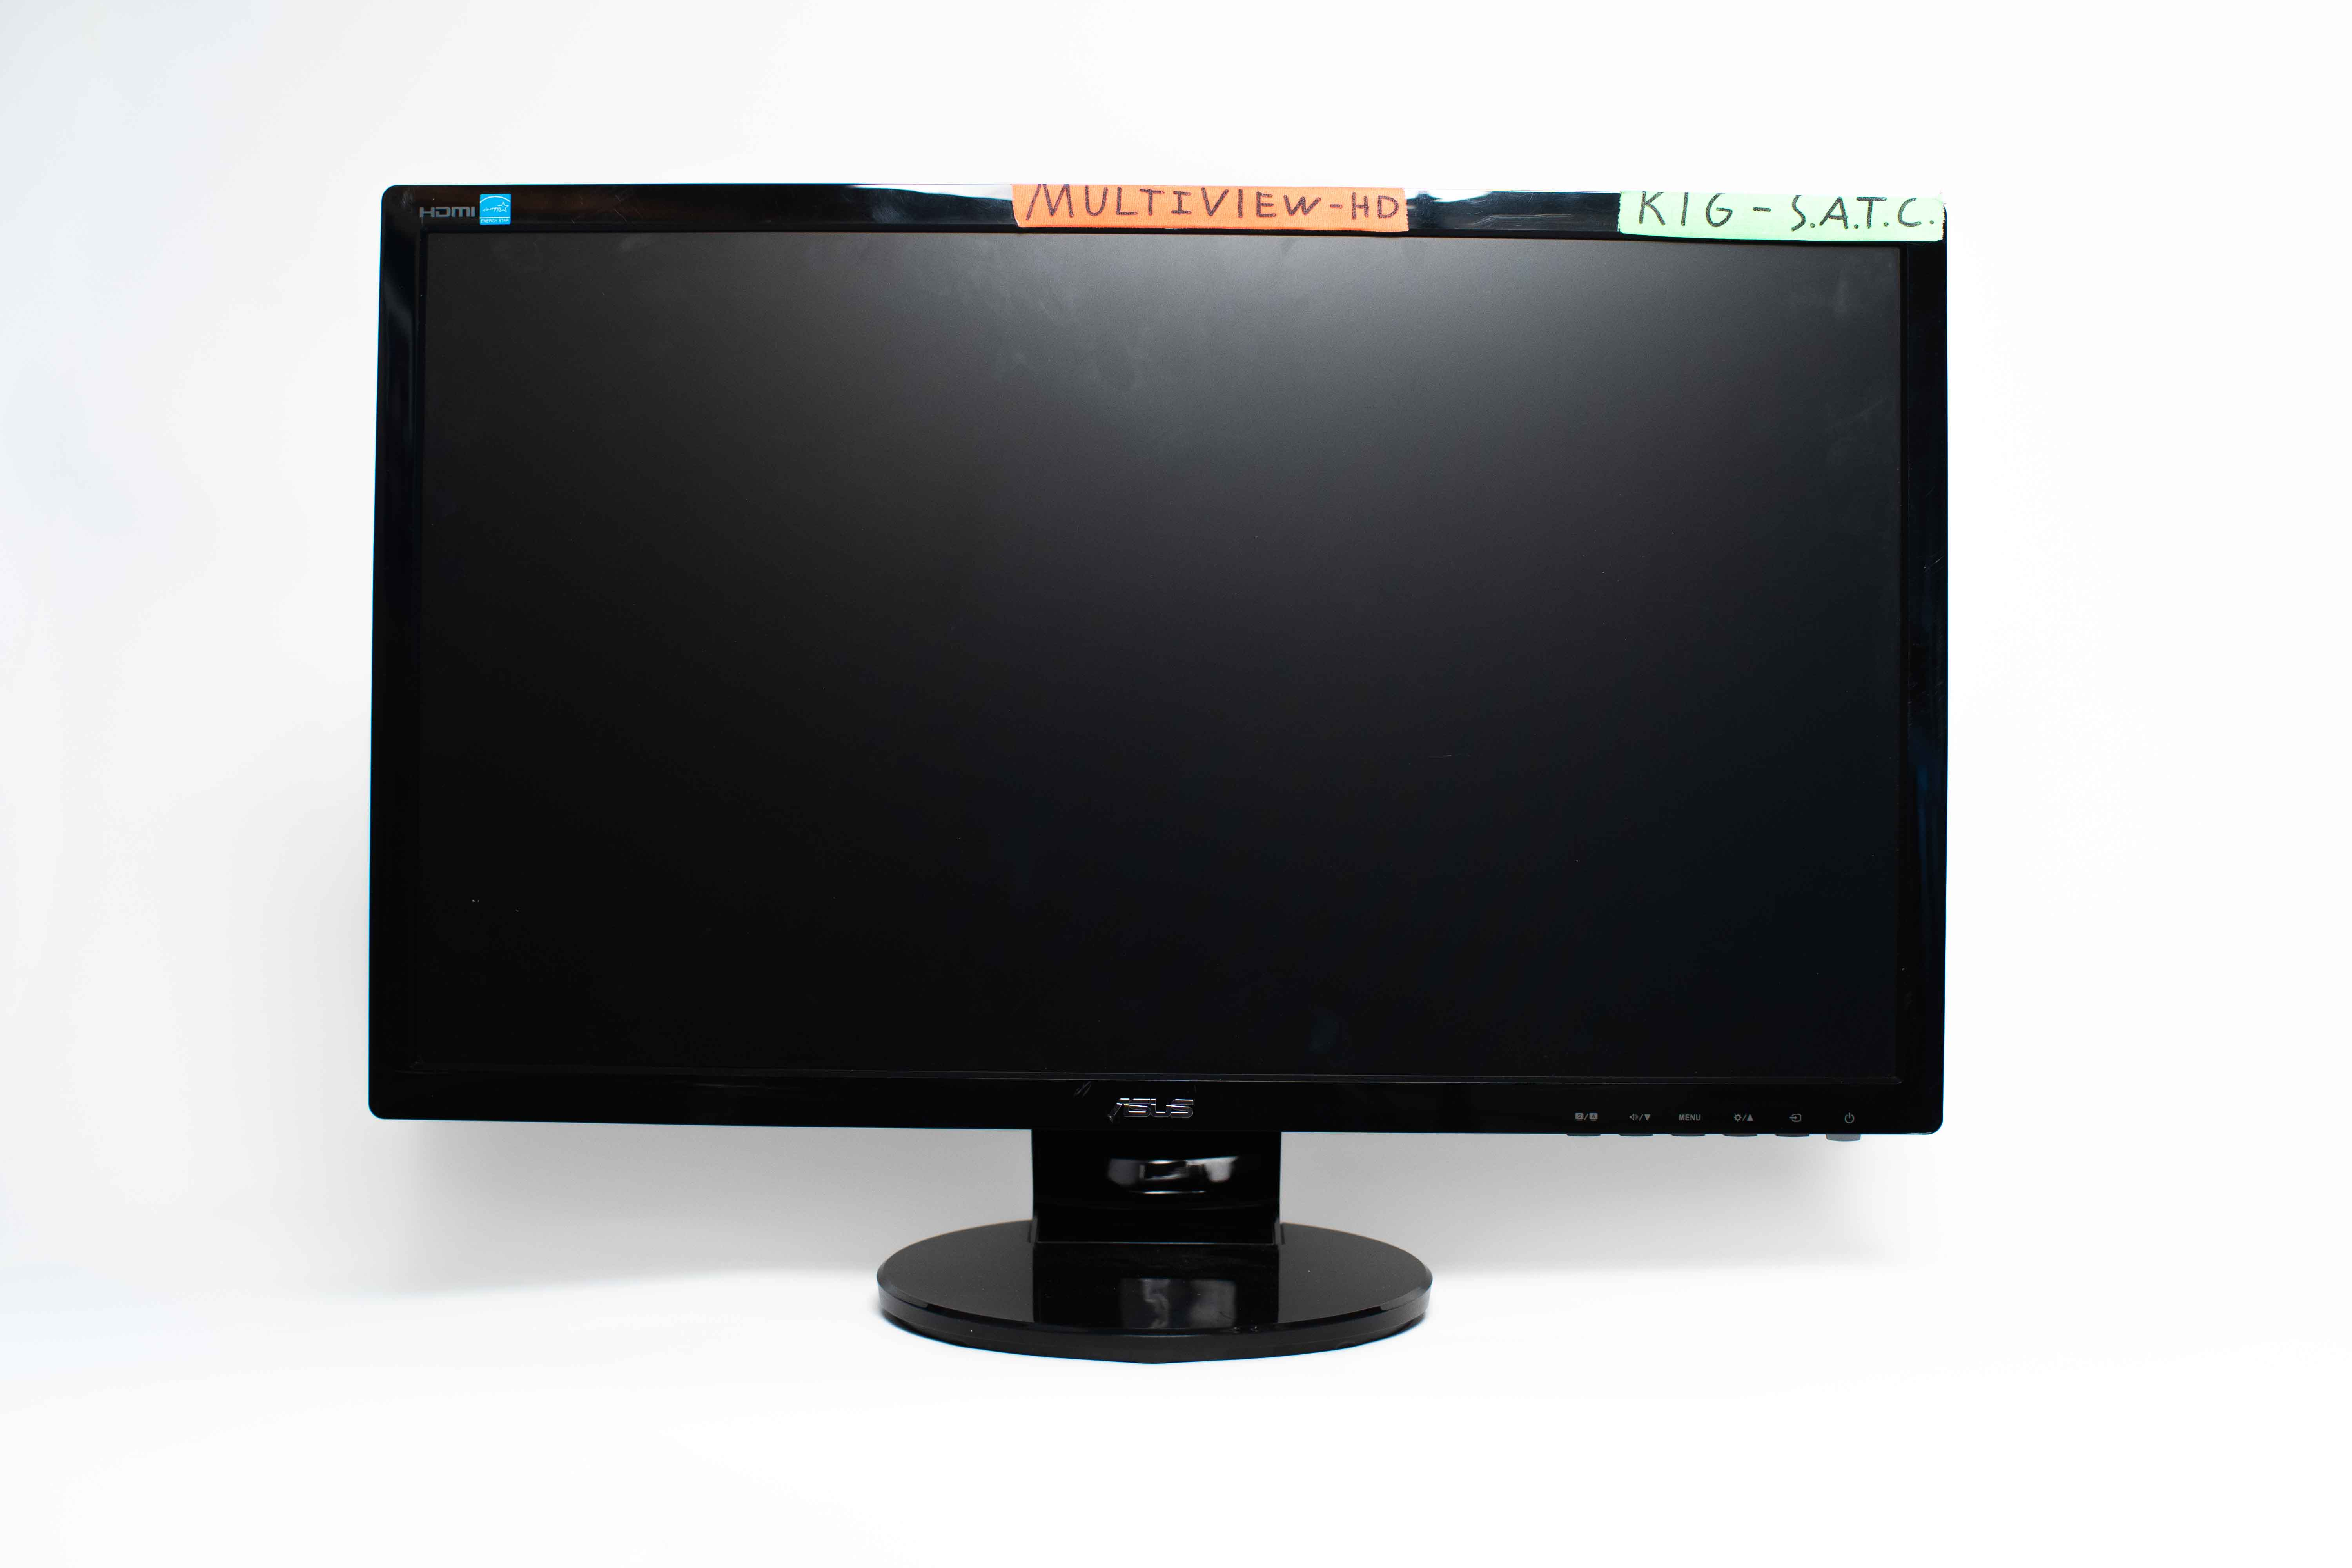 Acer 24 inch Mulitview